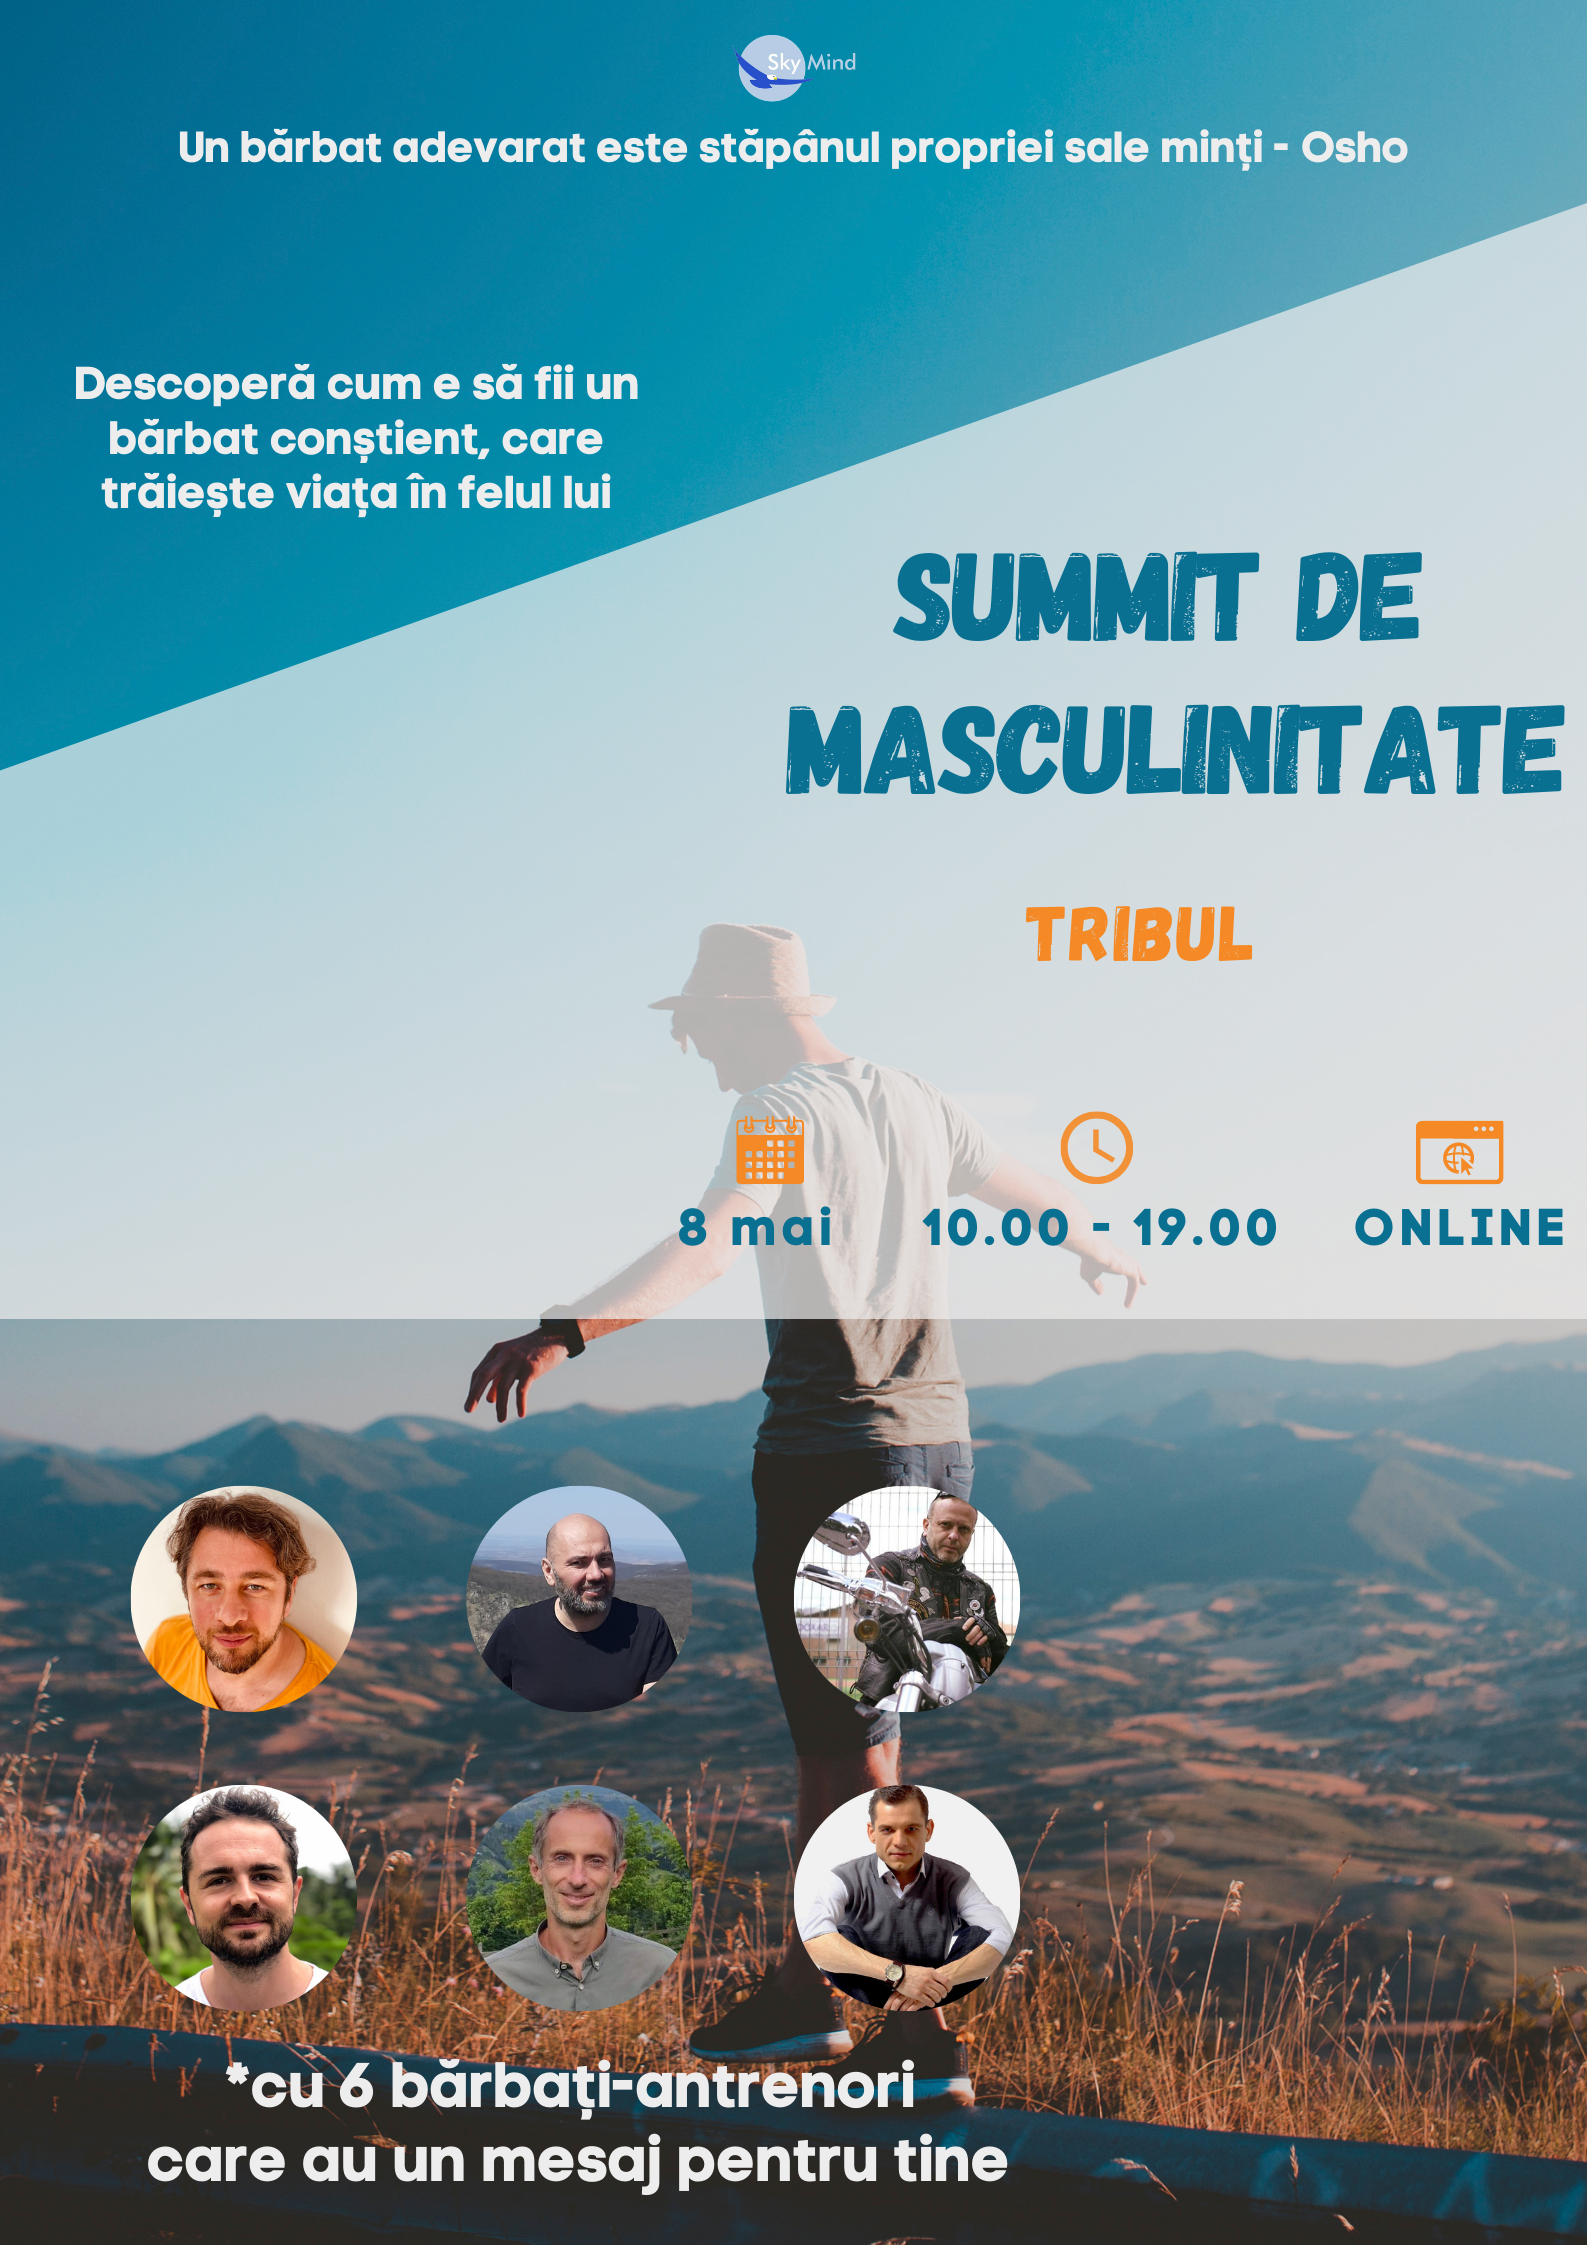 Copy of Summit de masculinitate